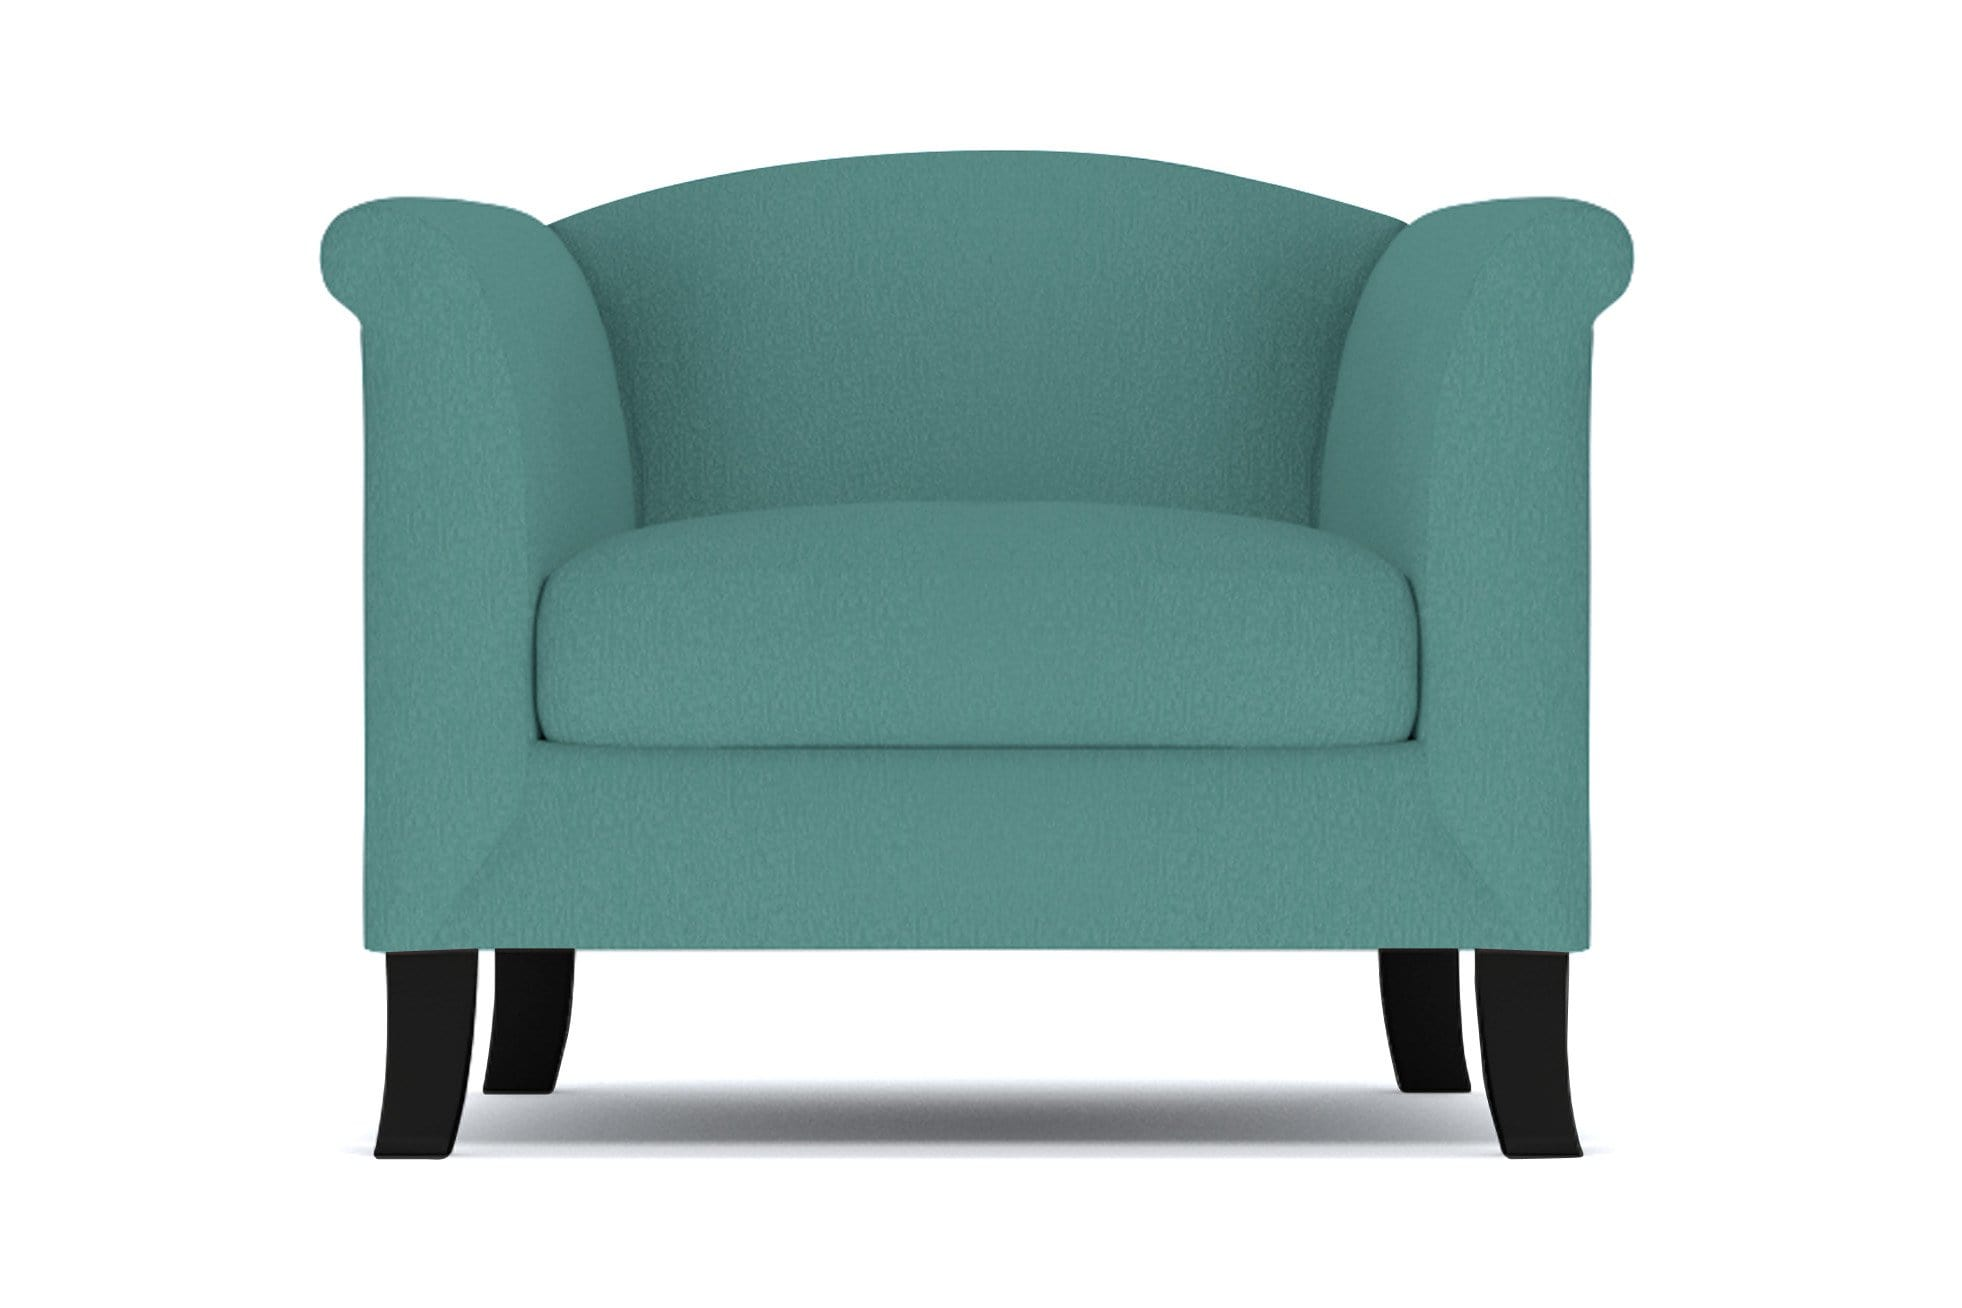 Albright_Chair__Light_Blue___Accent_Chair__Furniture_sold_by_Apt2B